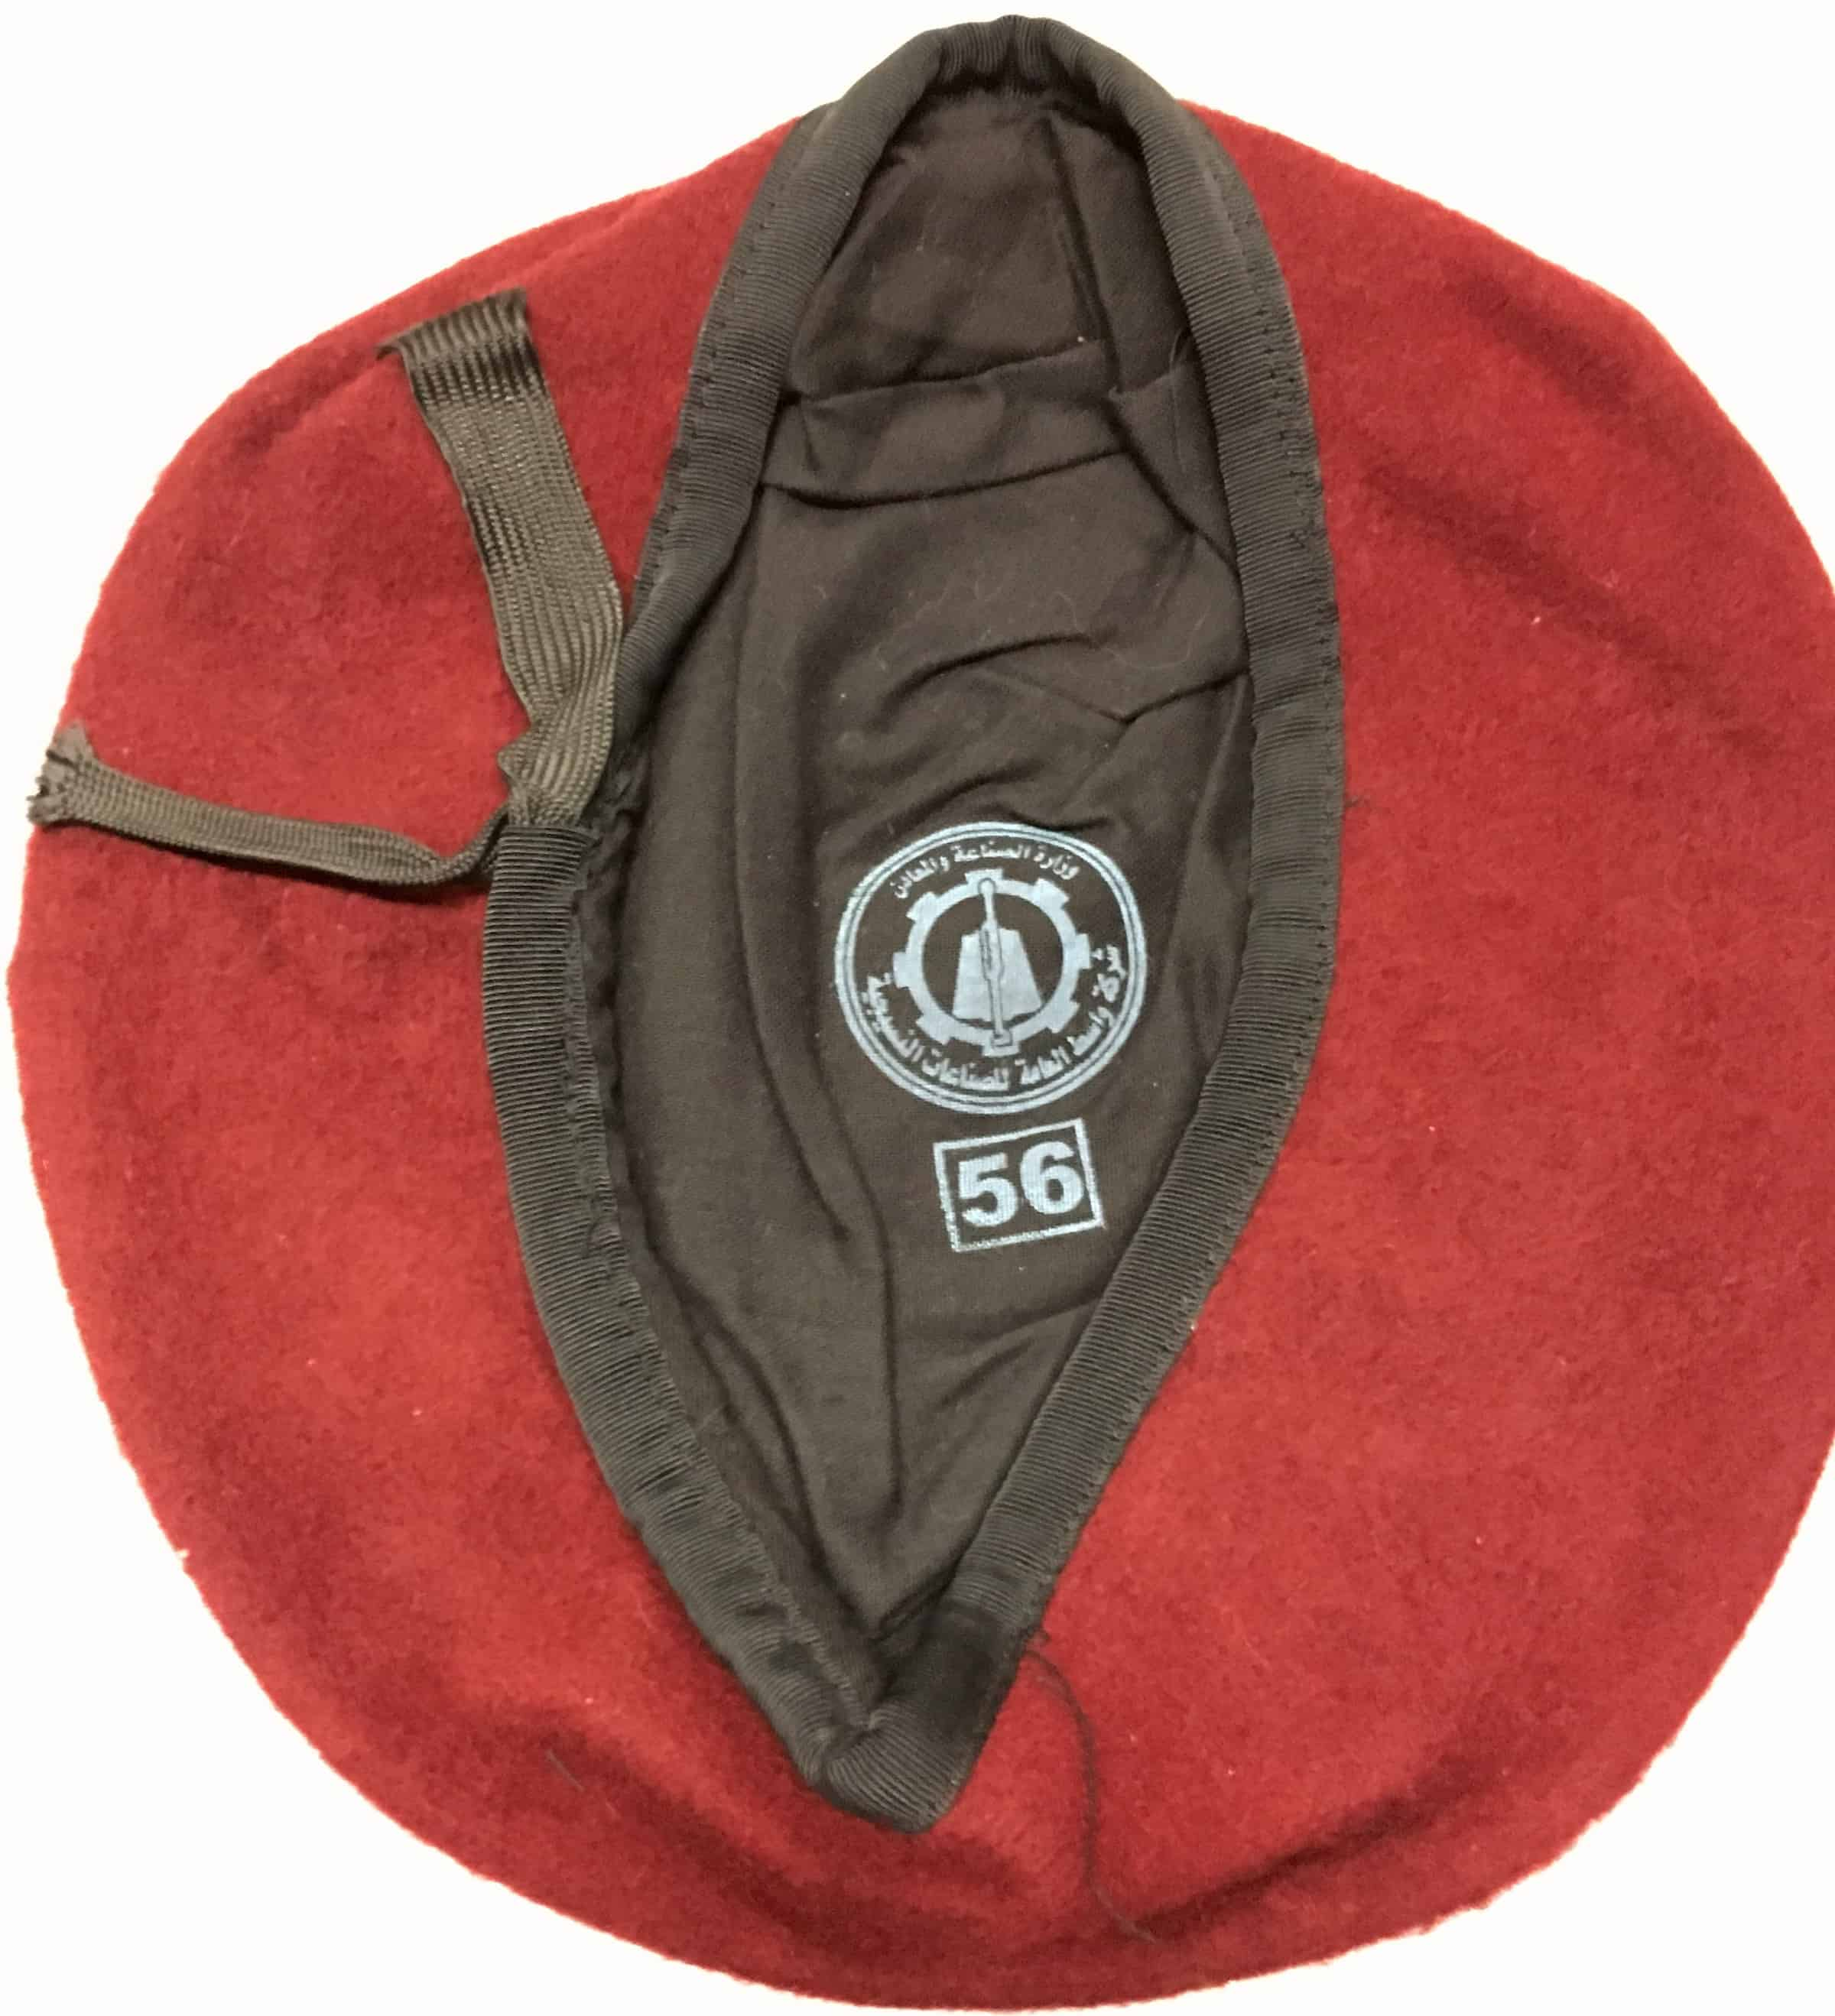 d021f65d7816d Iraqi Paratrooper Maroon Beret with Great Markings Size 56 - Enemy Militaria